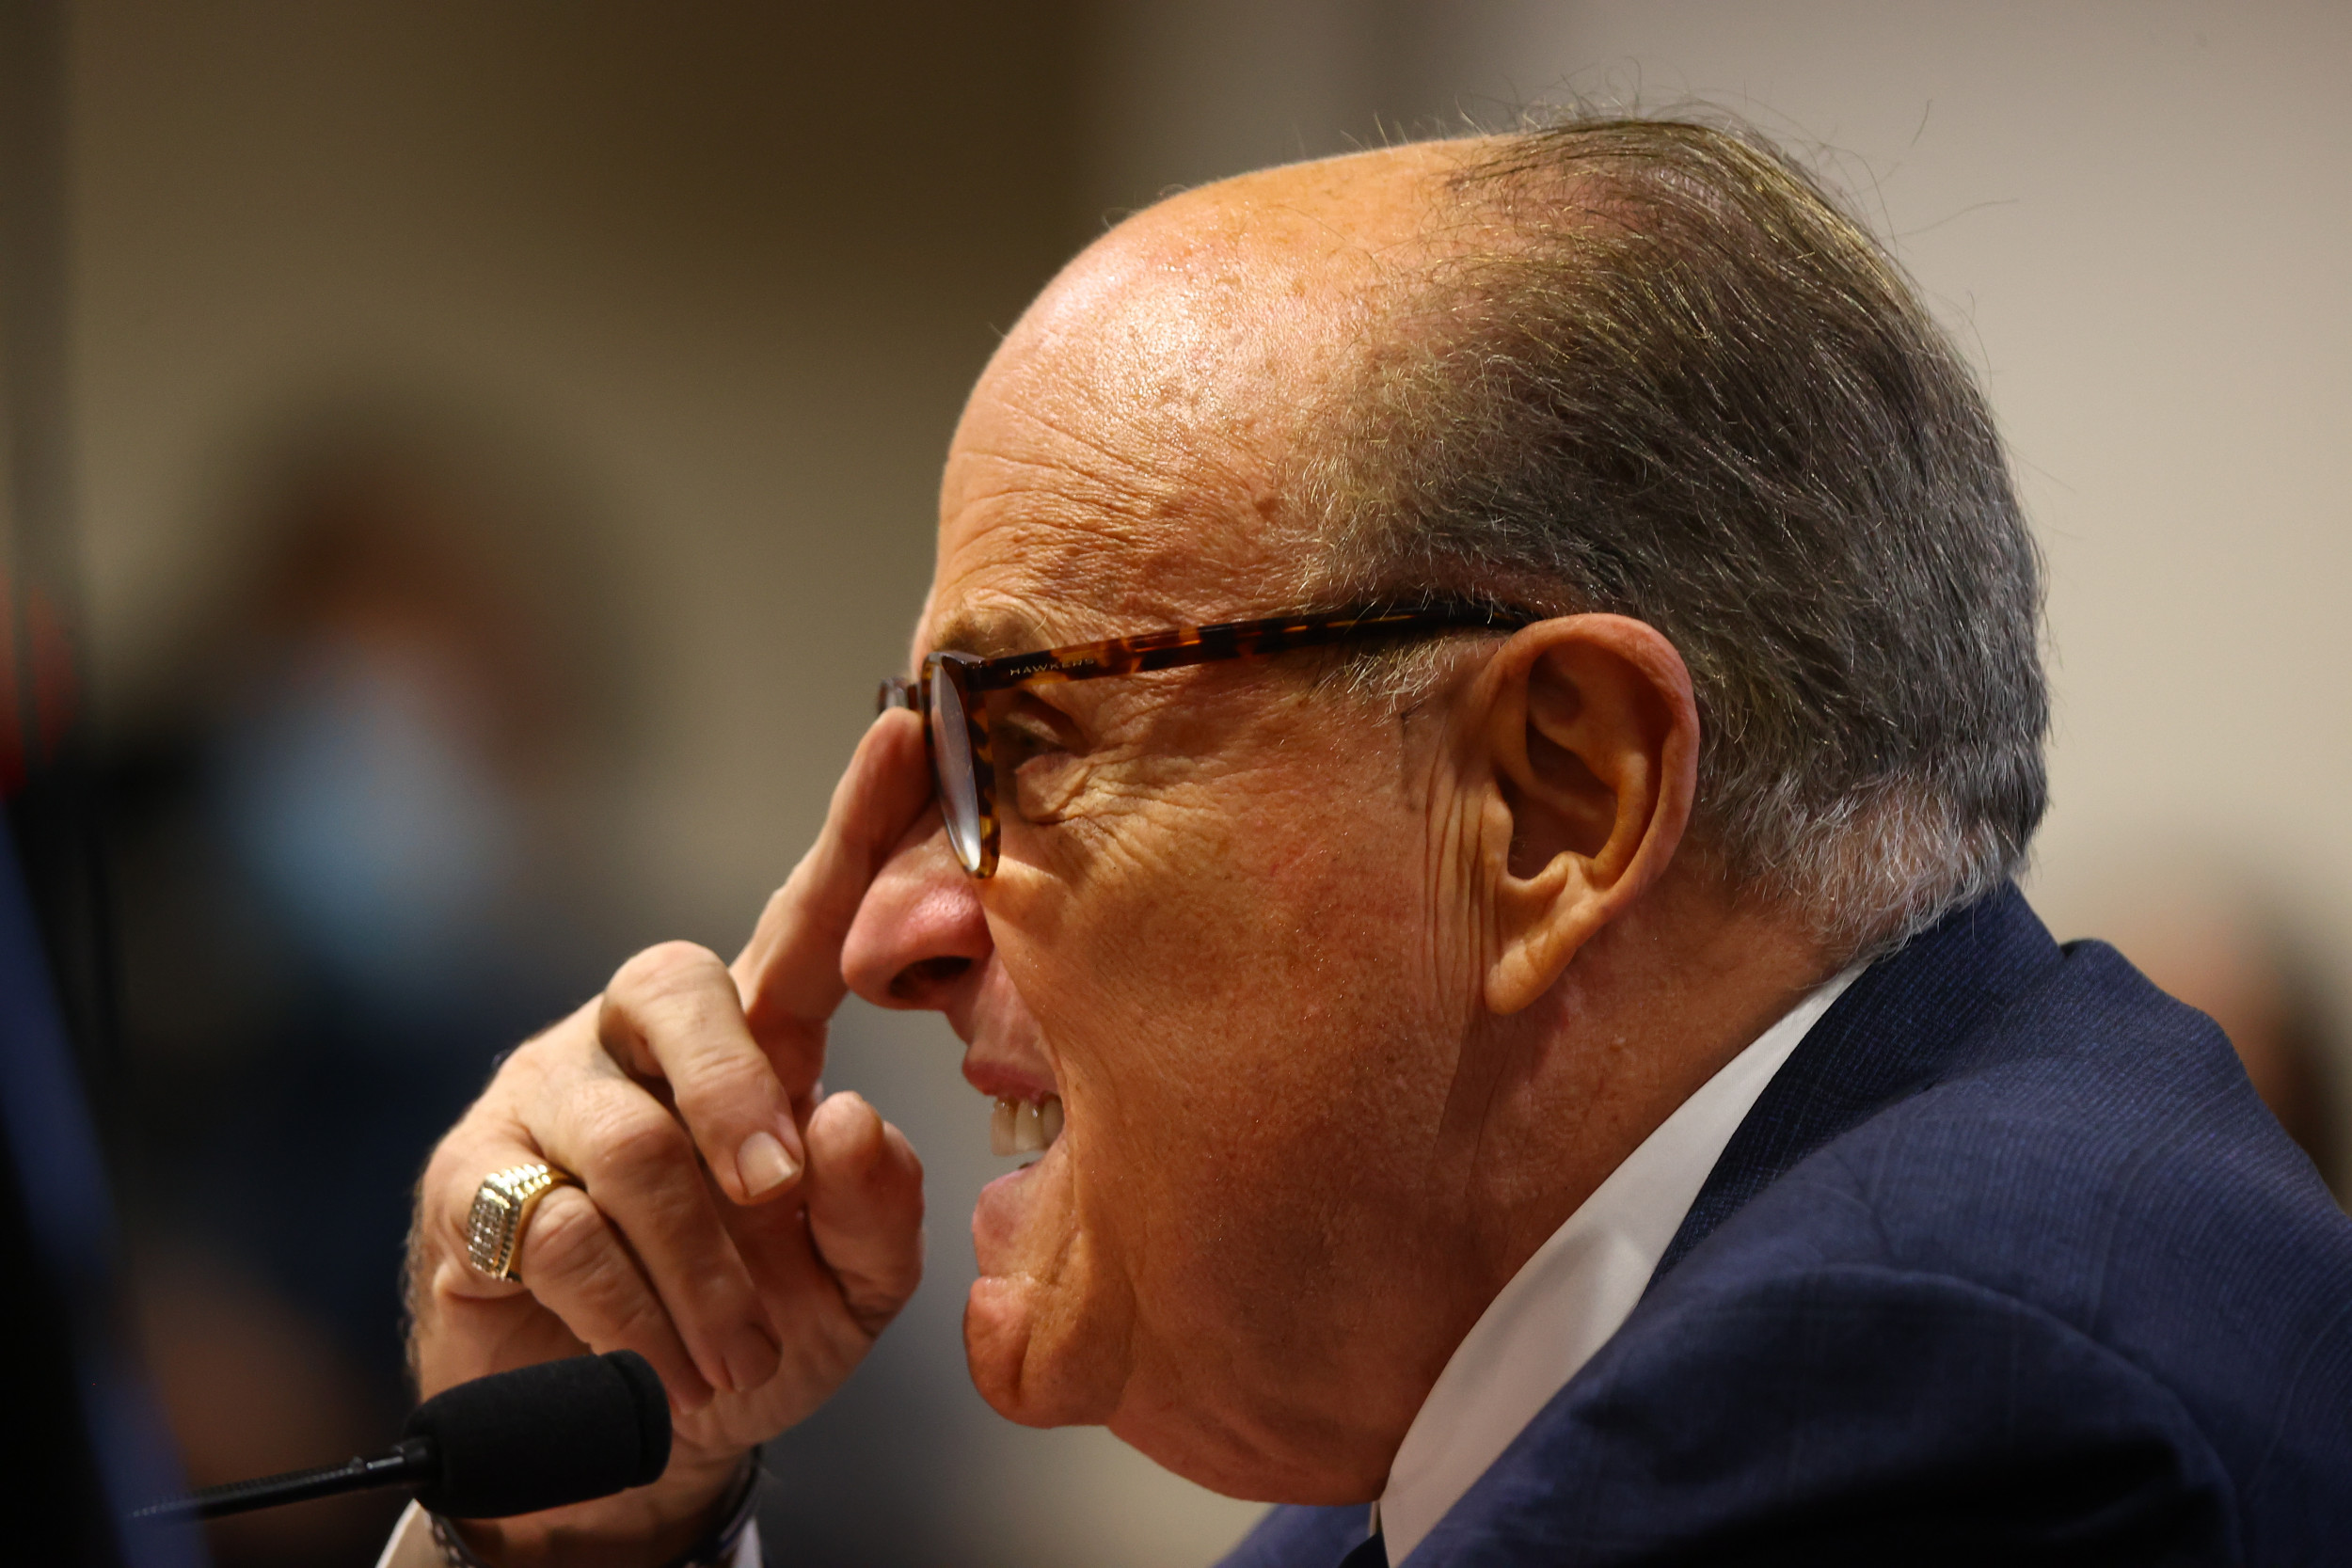 Rudy Giuliani Says He's 'Biggest Anti-Communist,' Not a 'Russian Agent' thumbnail